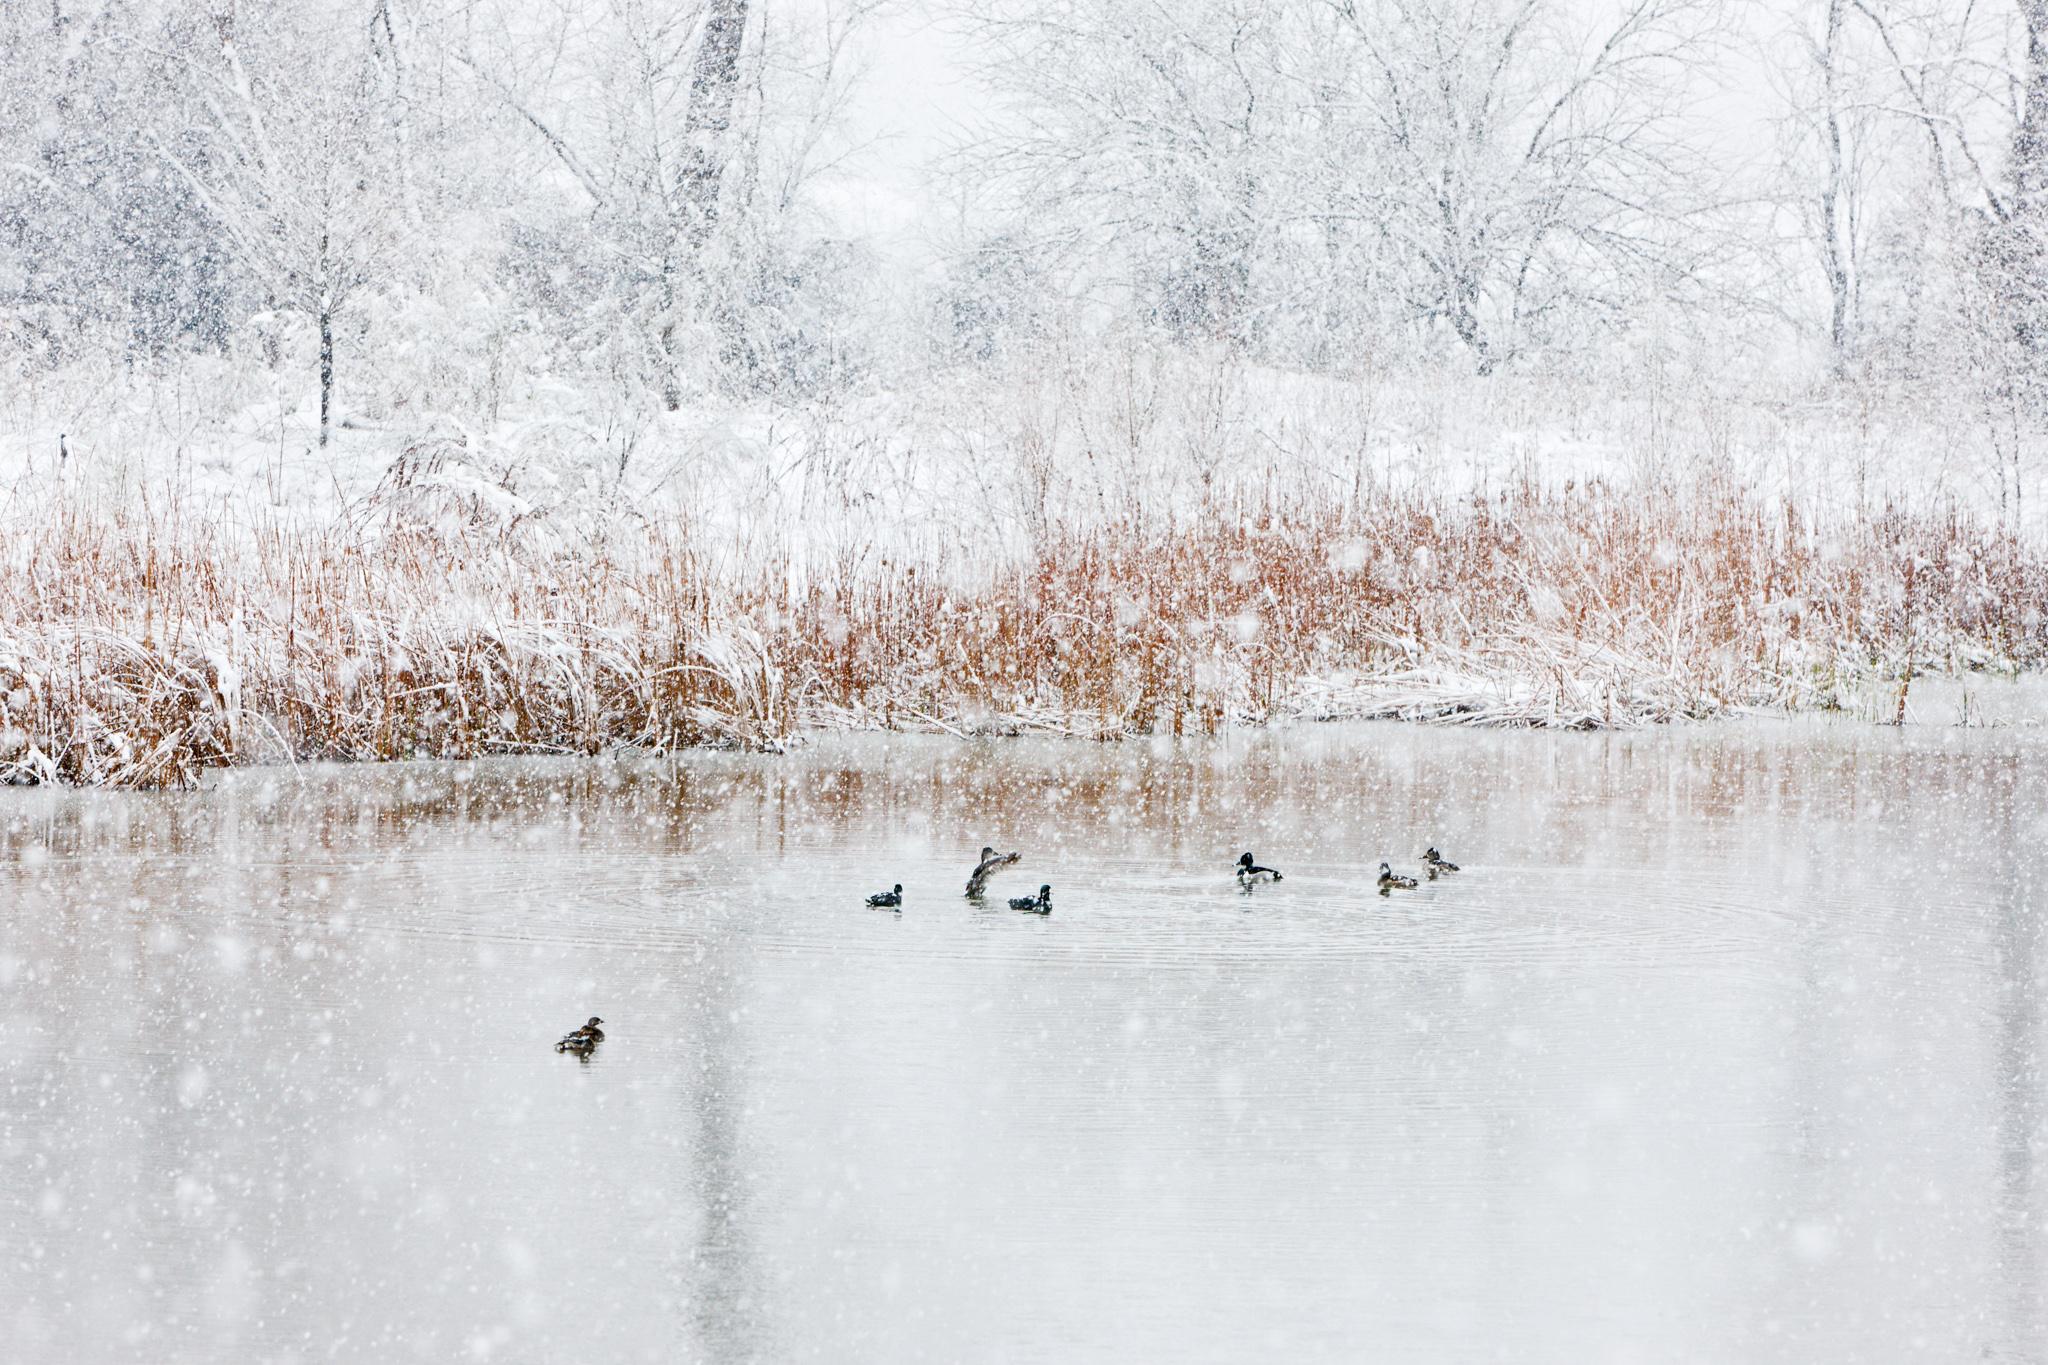 Ducks in Snow